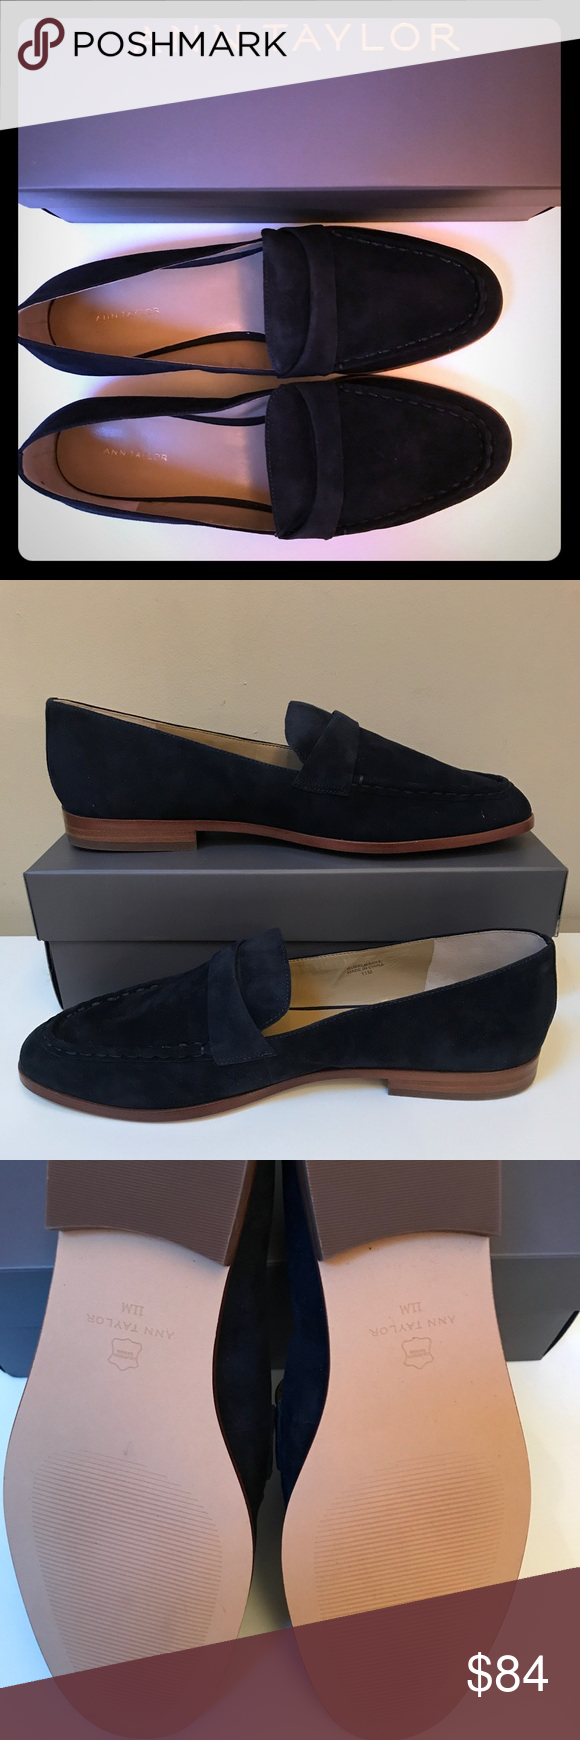 3c61b0b76fa Audriana Suede Loafers - 11M Navy Blue. New Navy blue suede loafers will go  perfect with your skirts